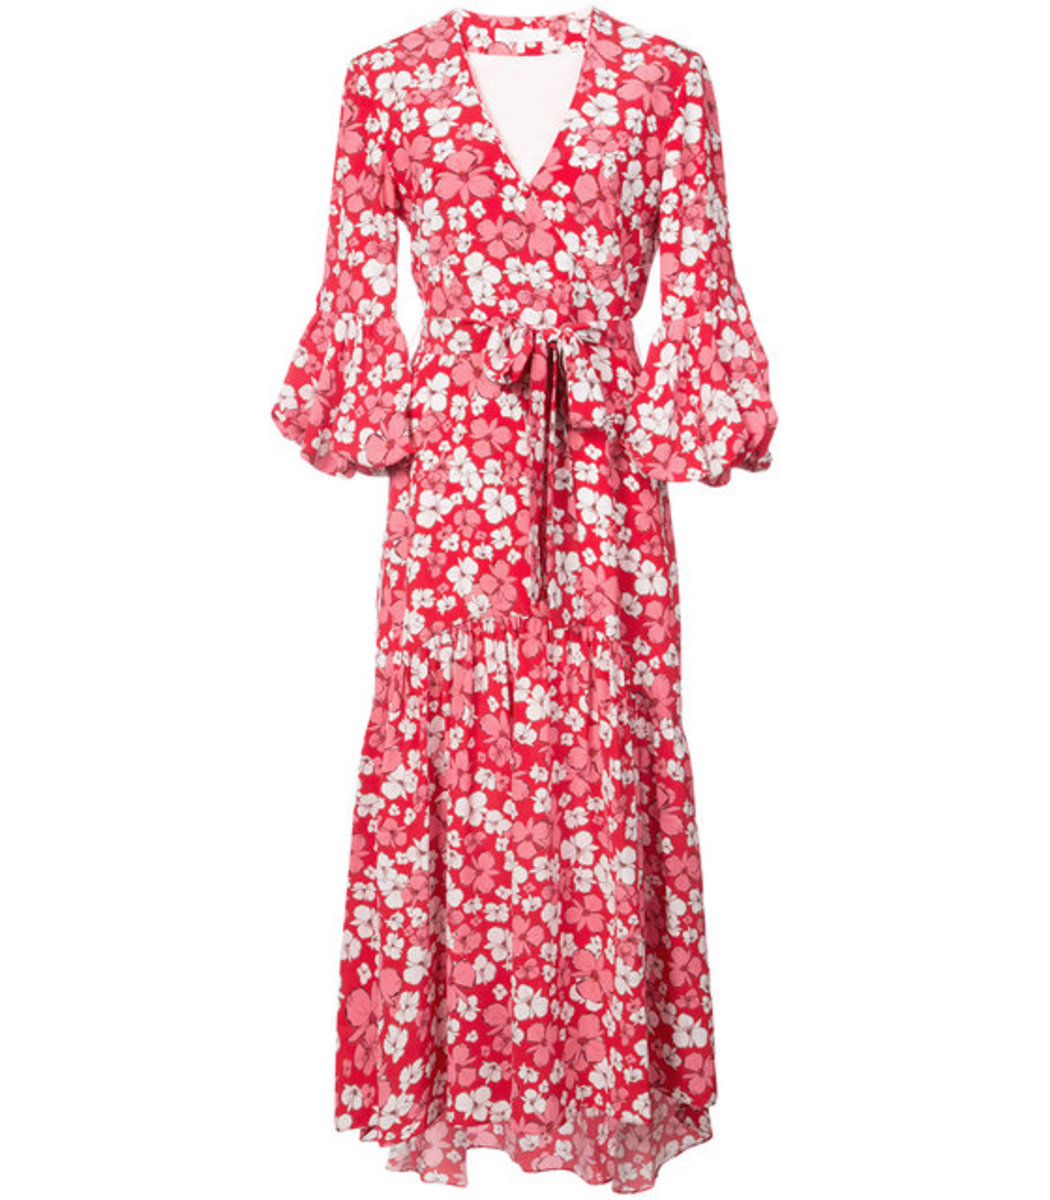 floral print asymmetric dress - Pink & Purple Borgo De Nor 61Yhpbl5a4